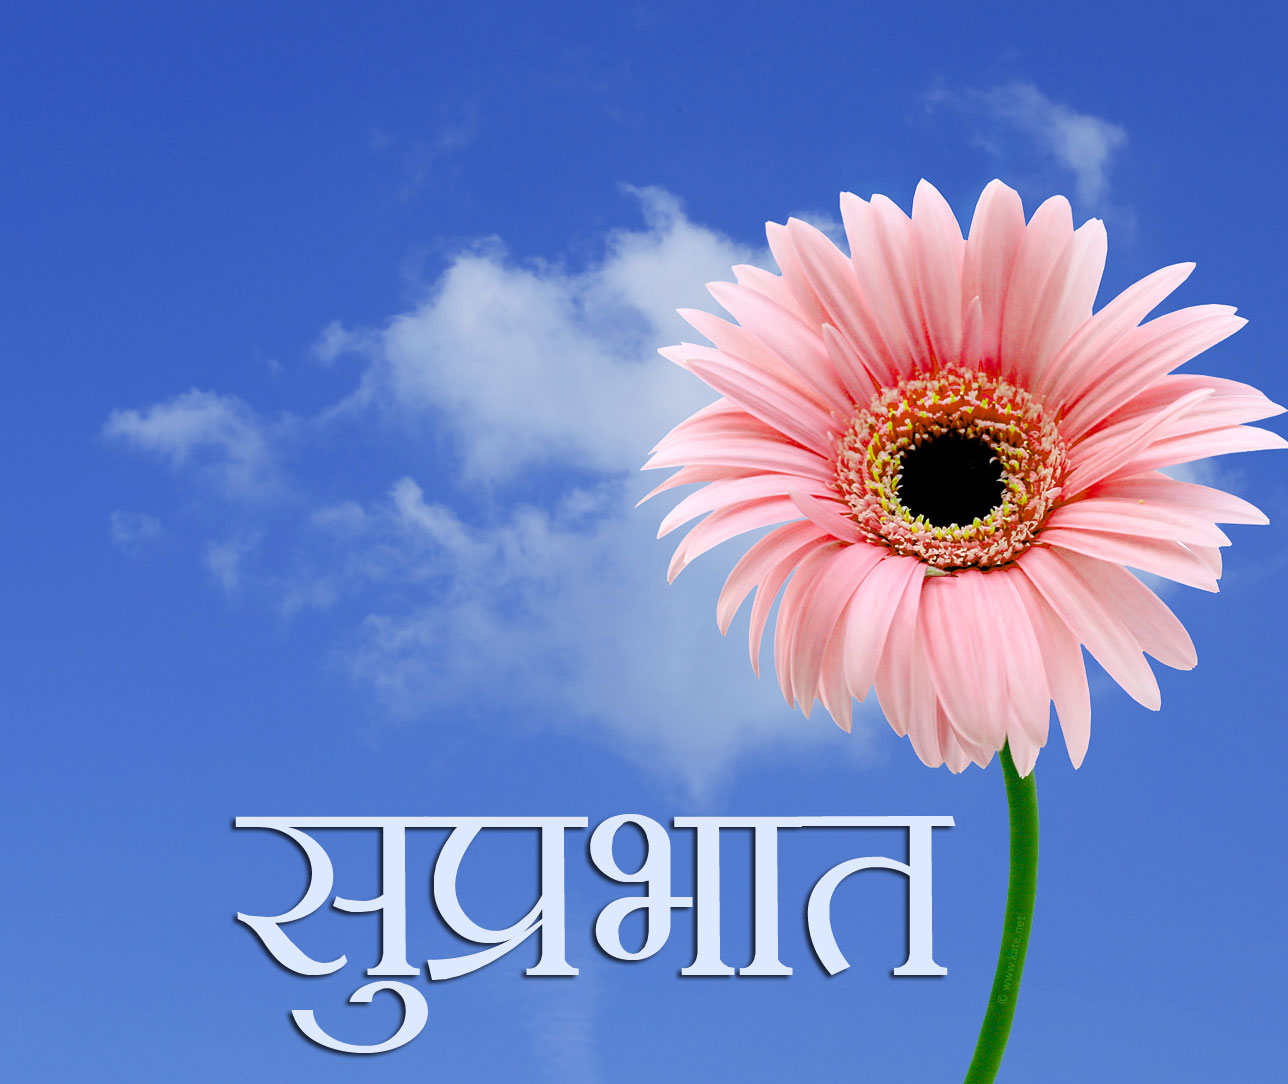 Flower Suprabhat Images Photo In HD